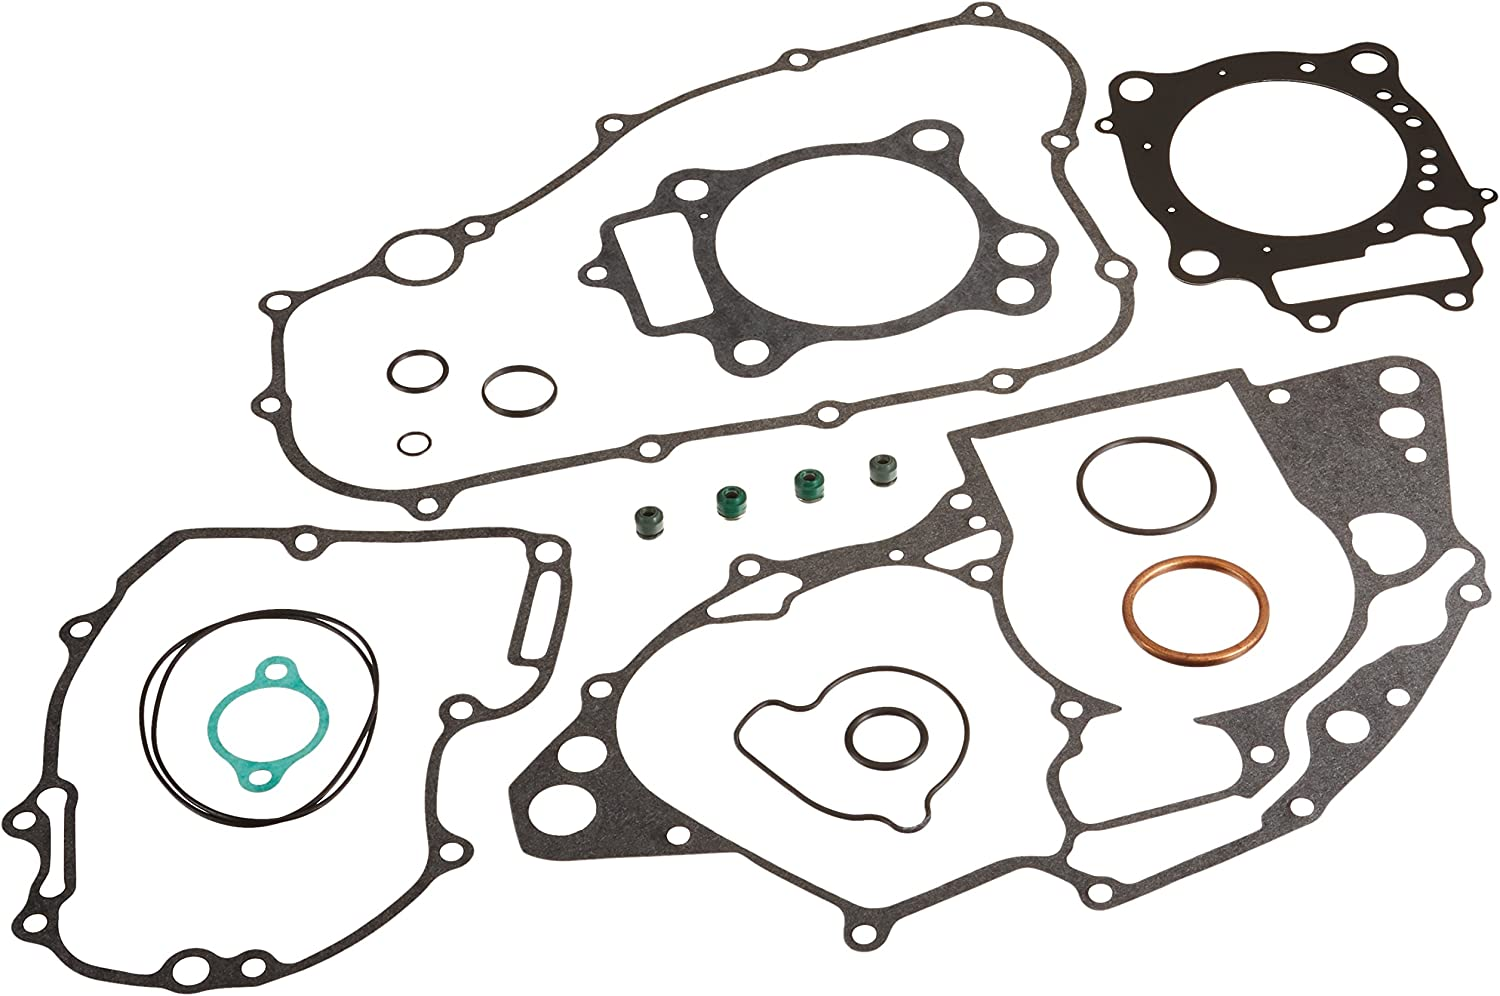 Vertex Complete Gasket favorite Set W O Max 76% OFF Replacement with Seals Compatible